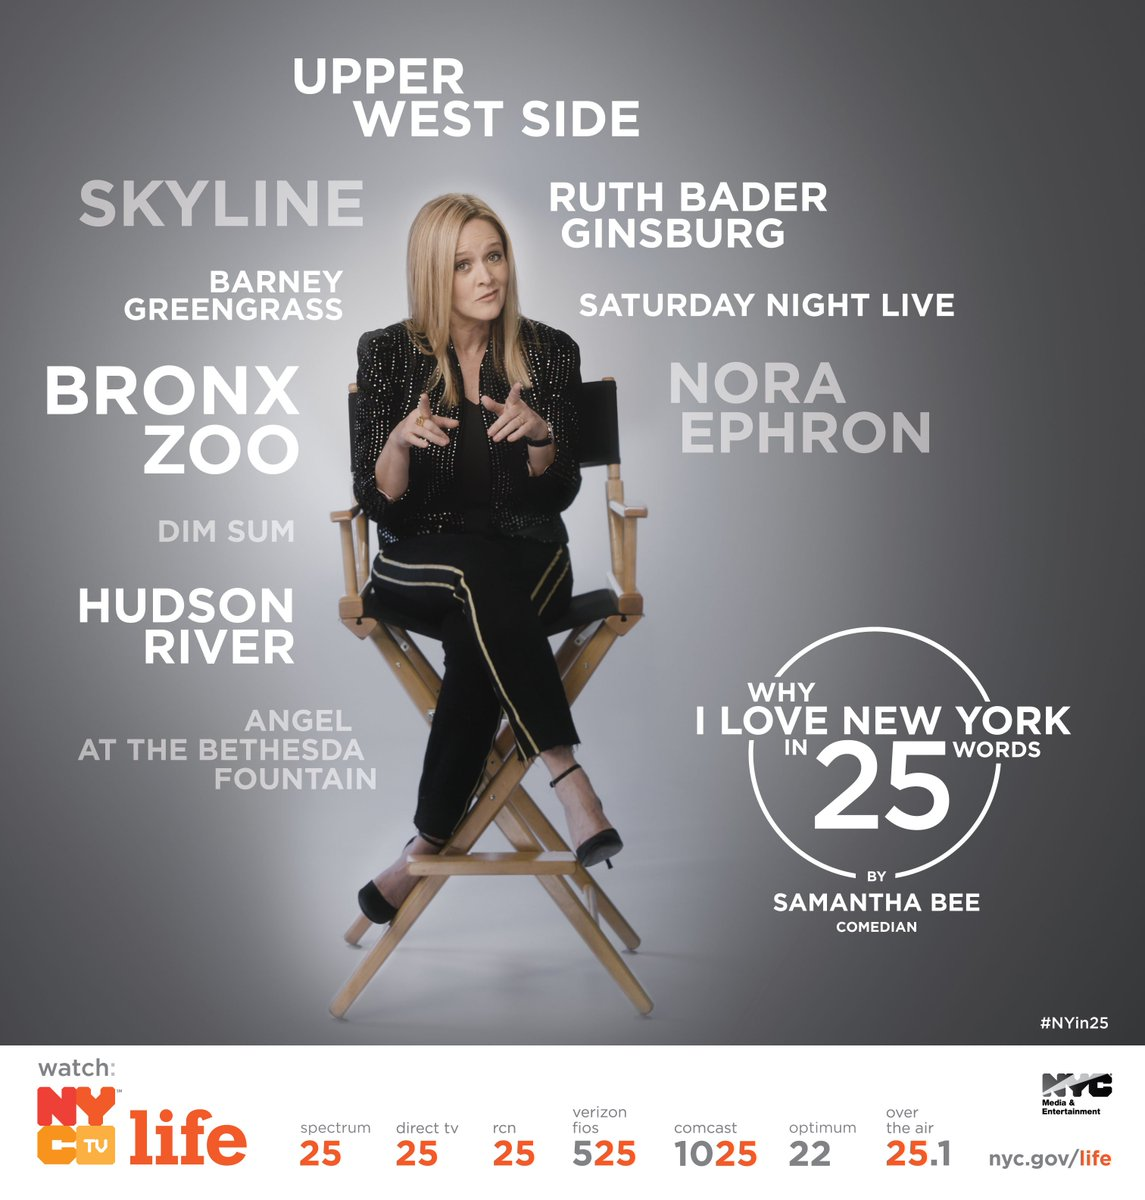 Nyc media on twitter today we launched new york in 25 a new prominent nyers including traceeellisross zacposen and iamsambee share what they love most about nyc in exactly 25 words publicscrutiny Choice Image